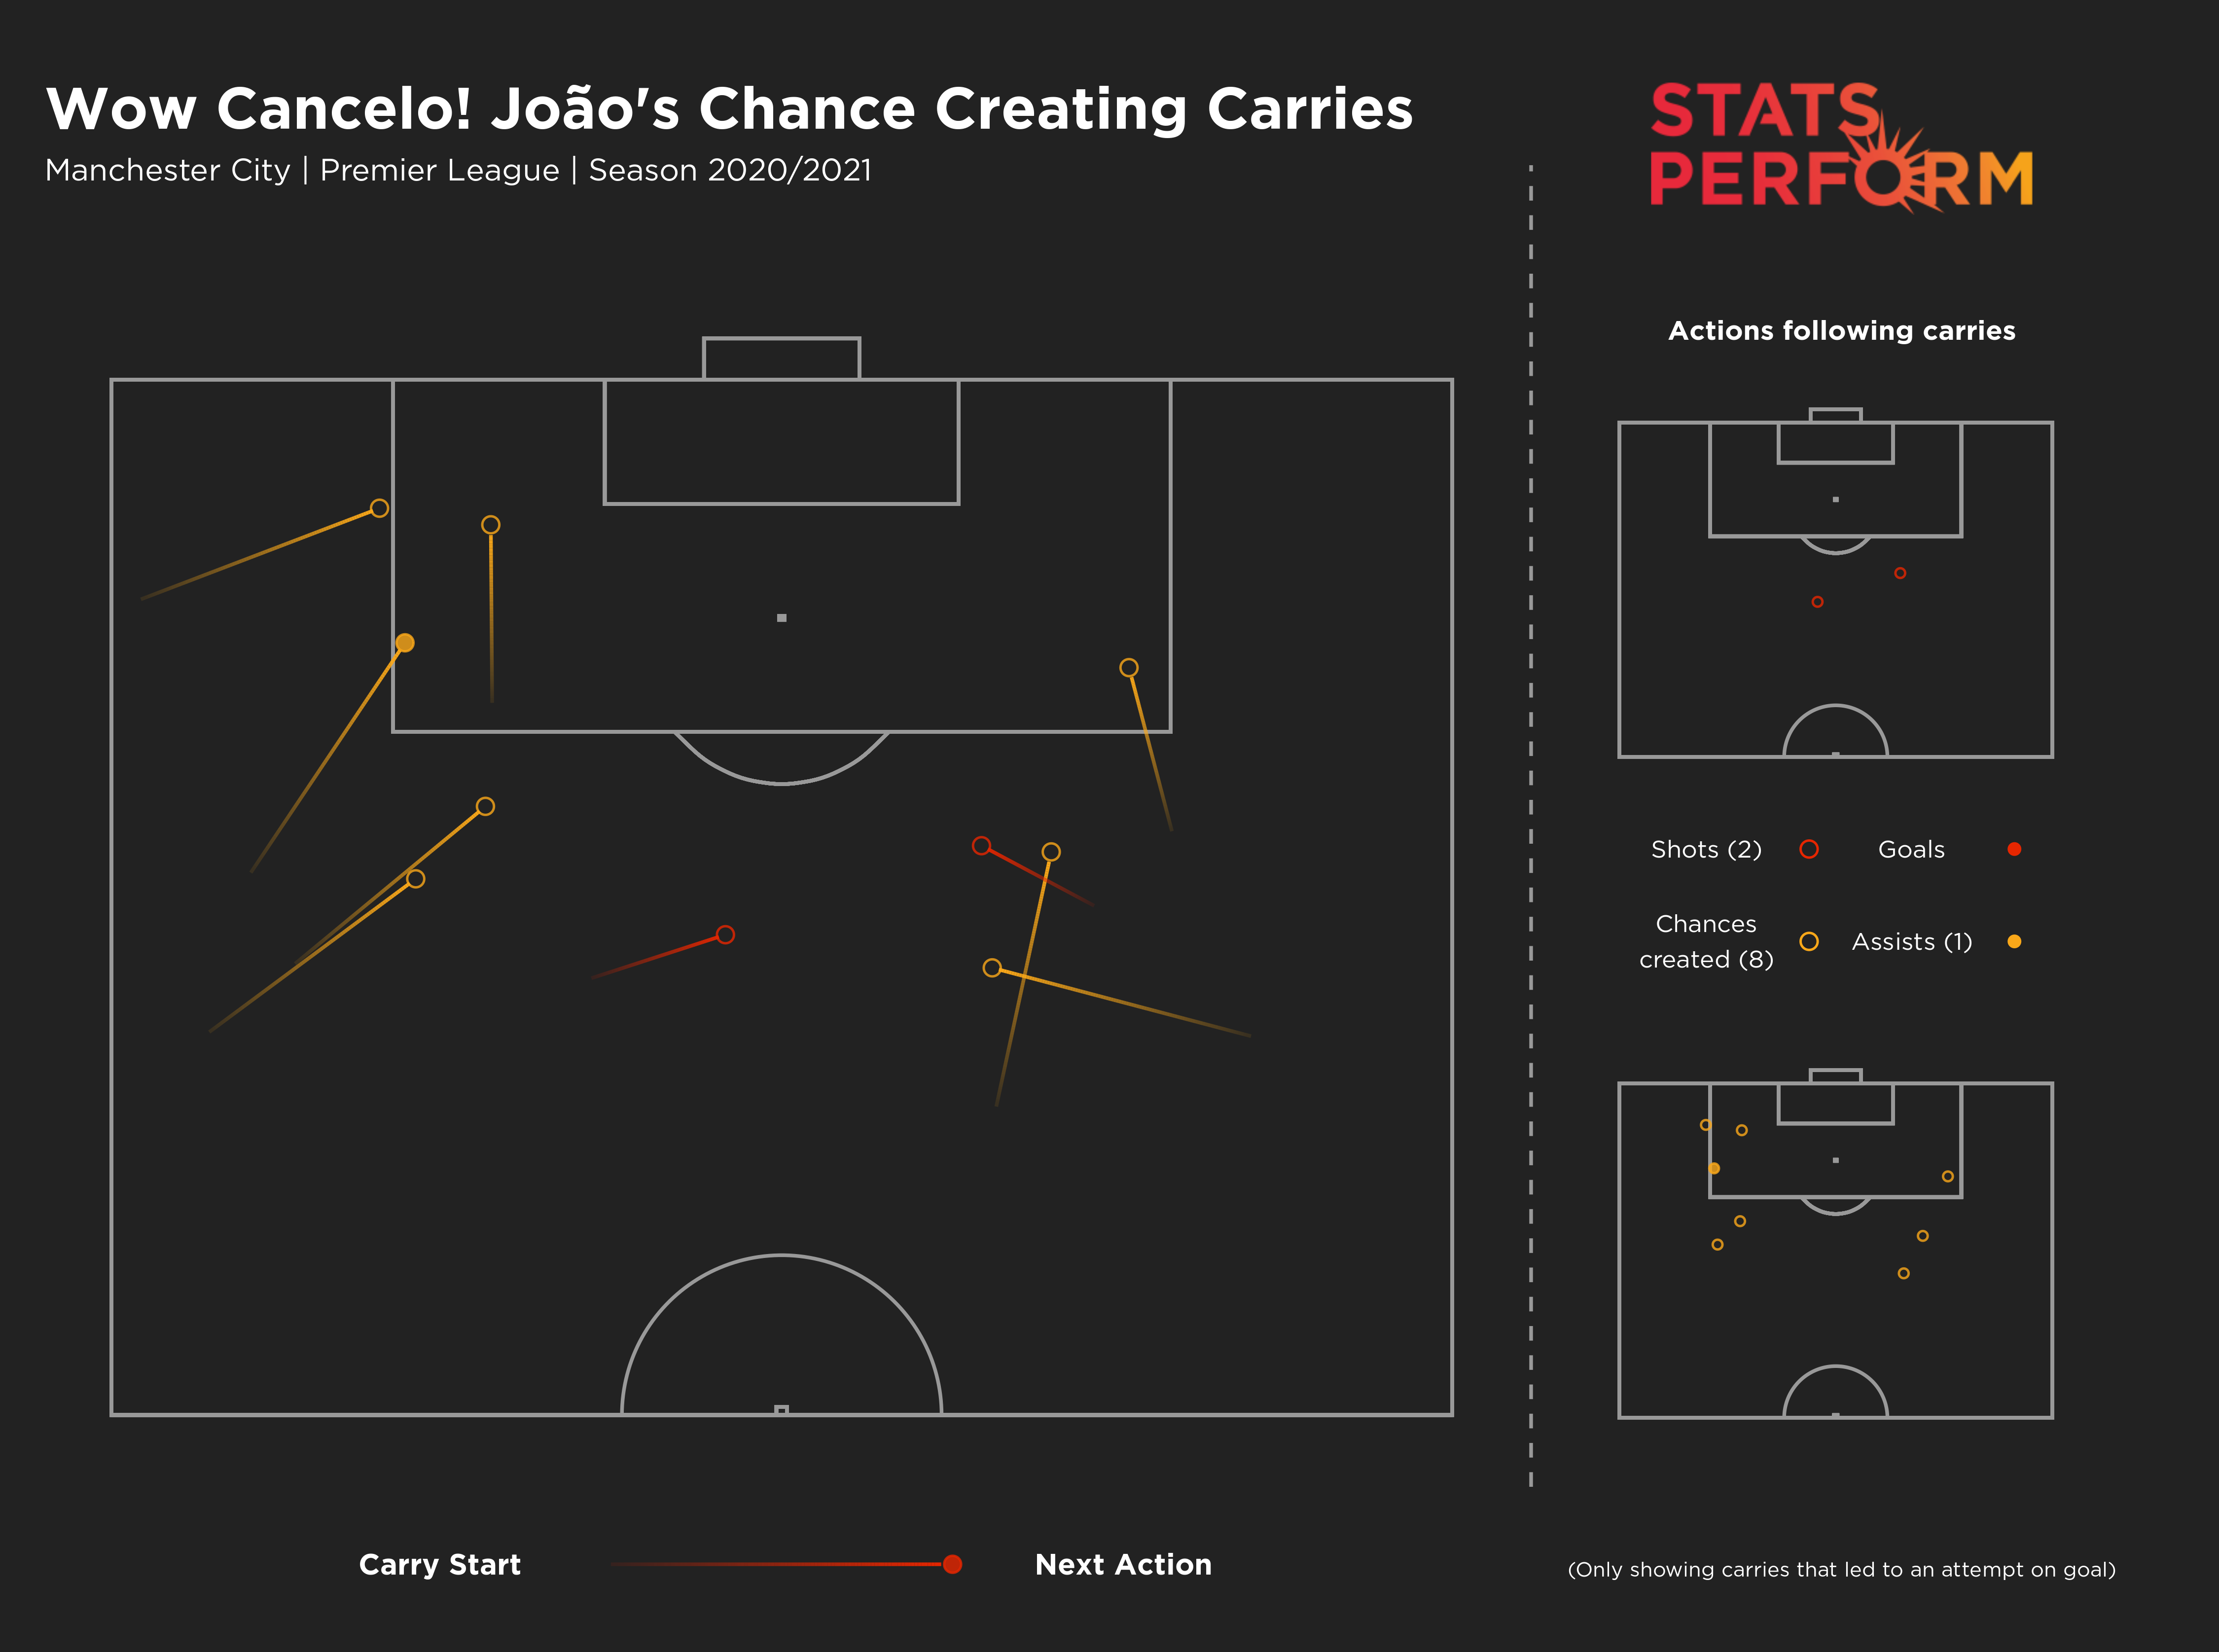 Joao Cancelo has added to Manchester City's attacking threat this season